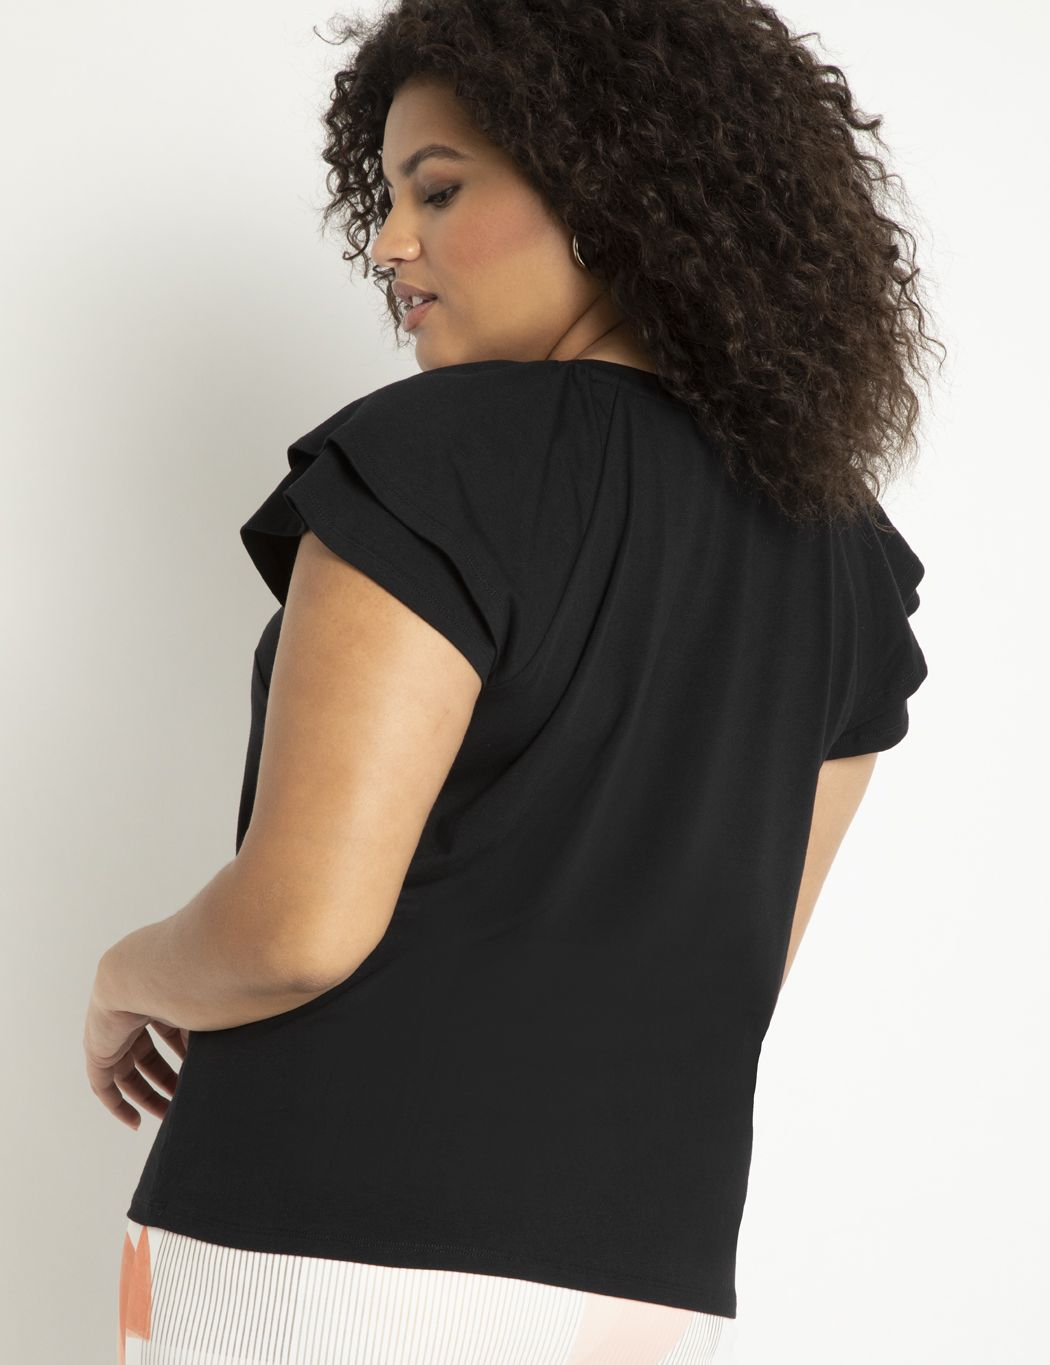 Ruffle Shoulder Tee